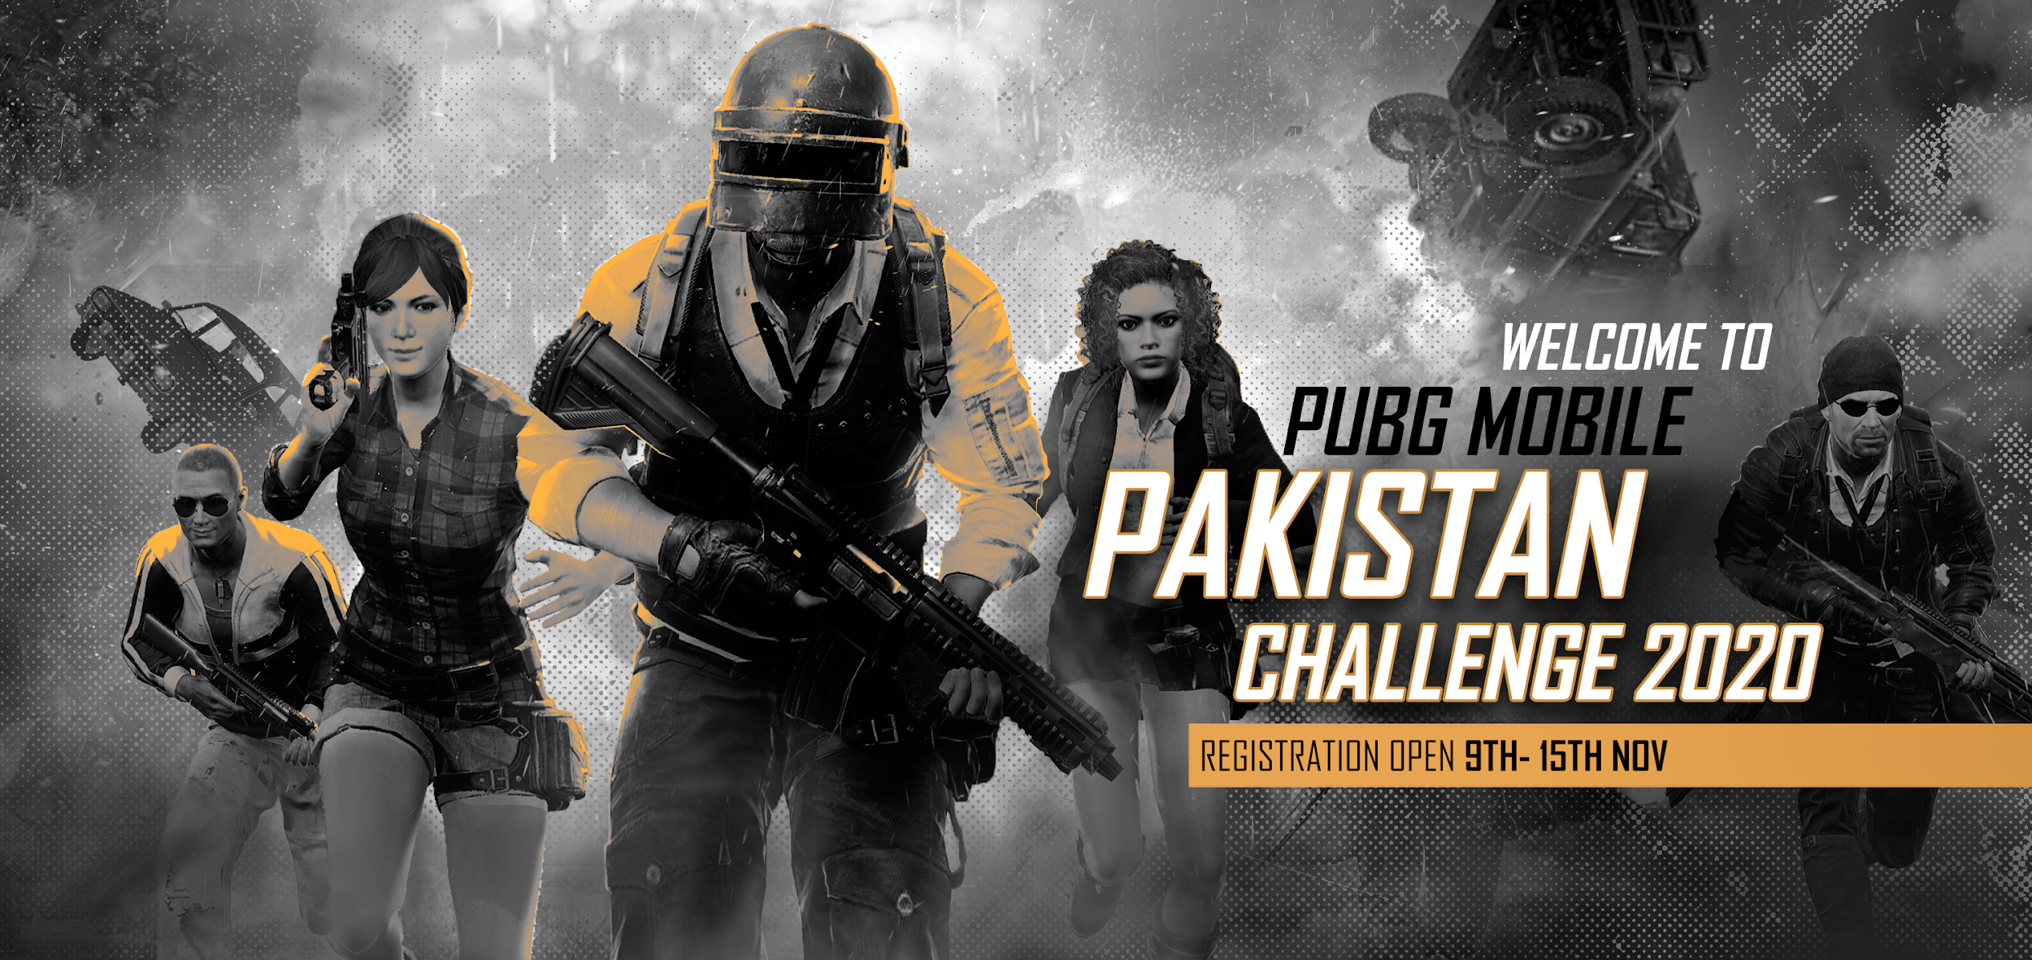 PUBG Mobile Pakistan